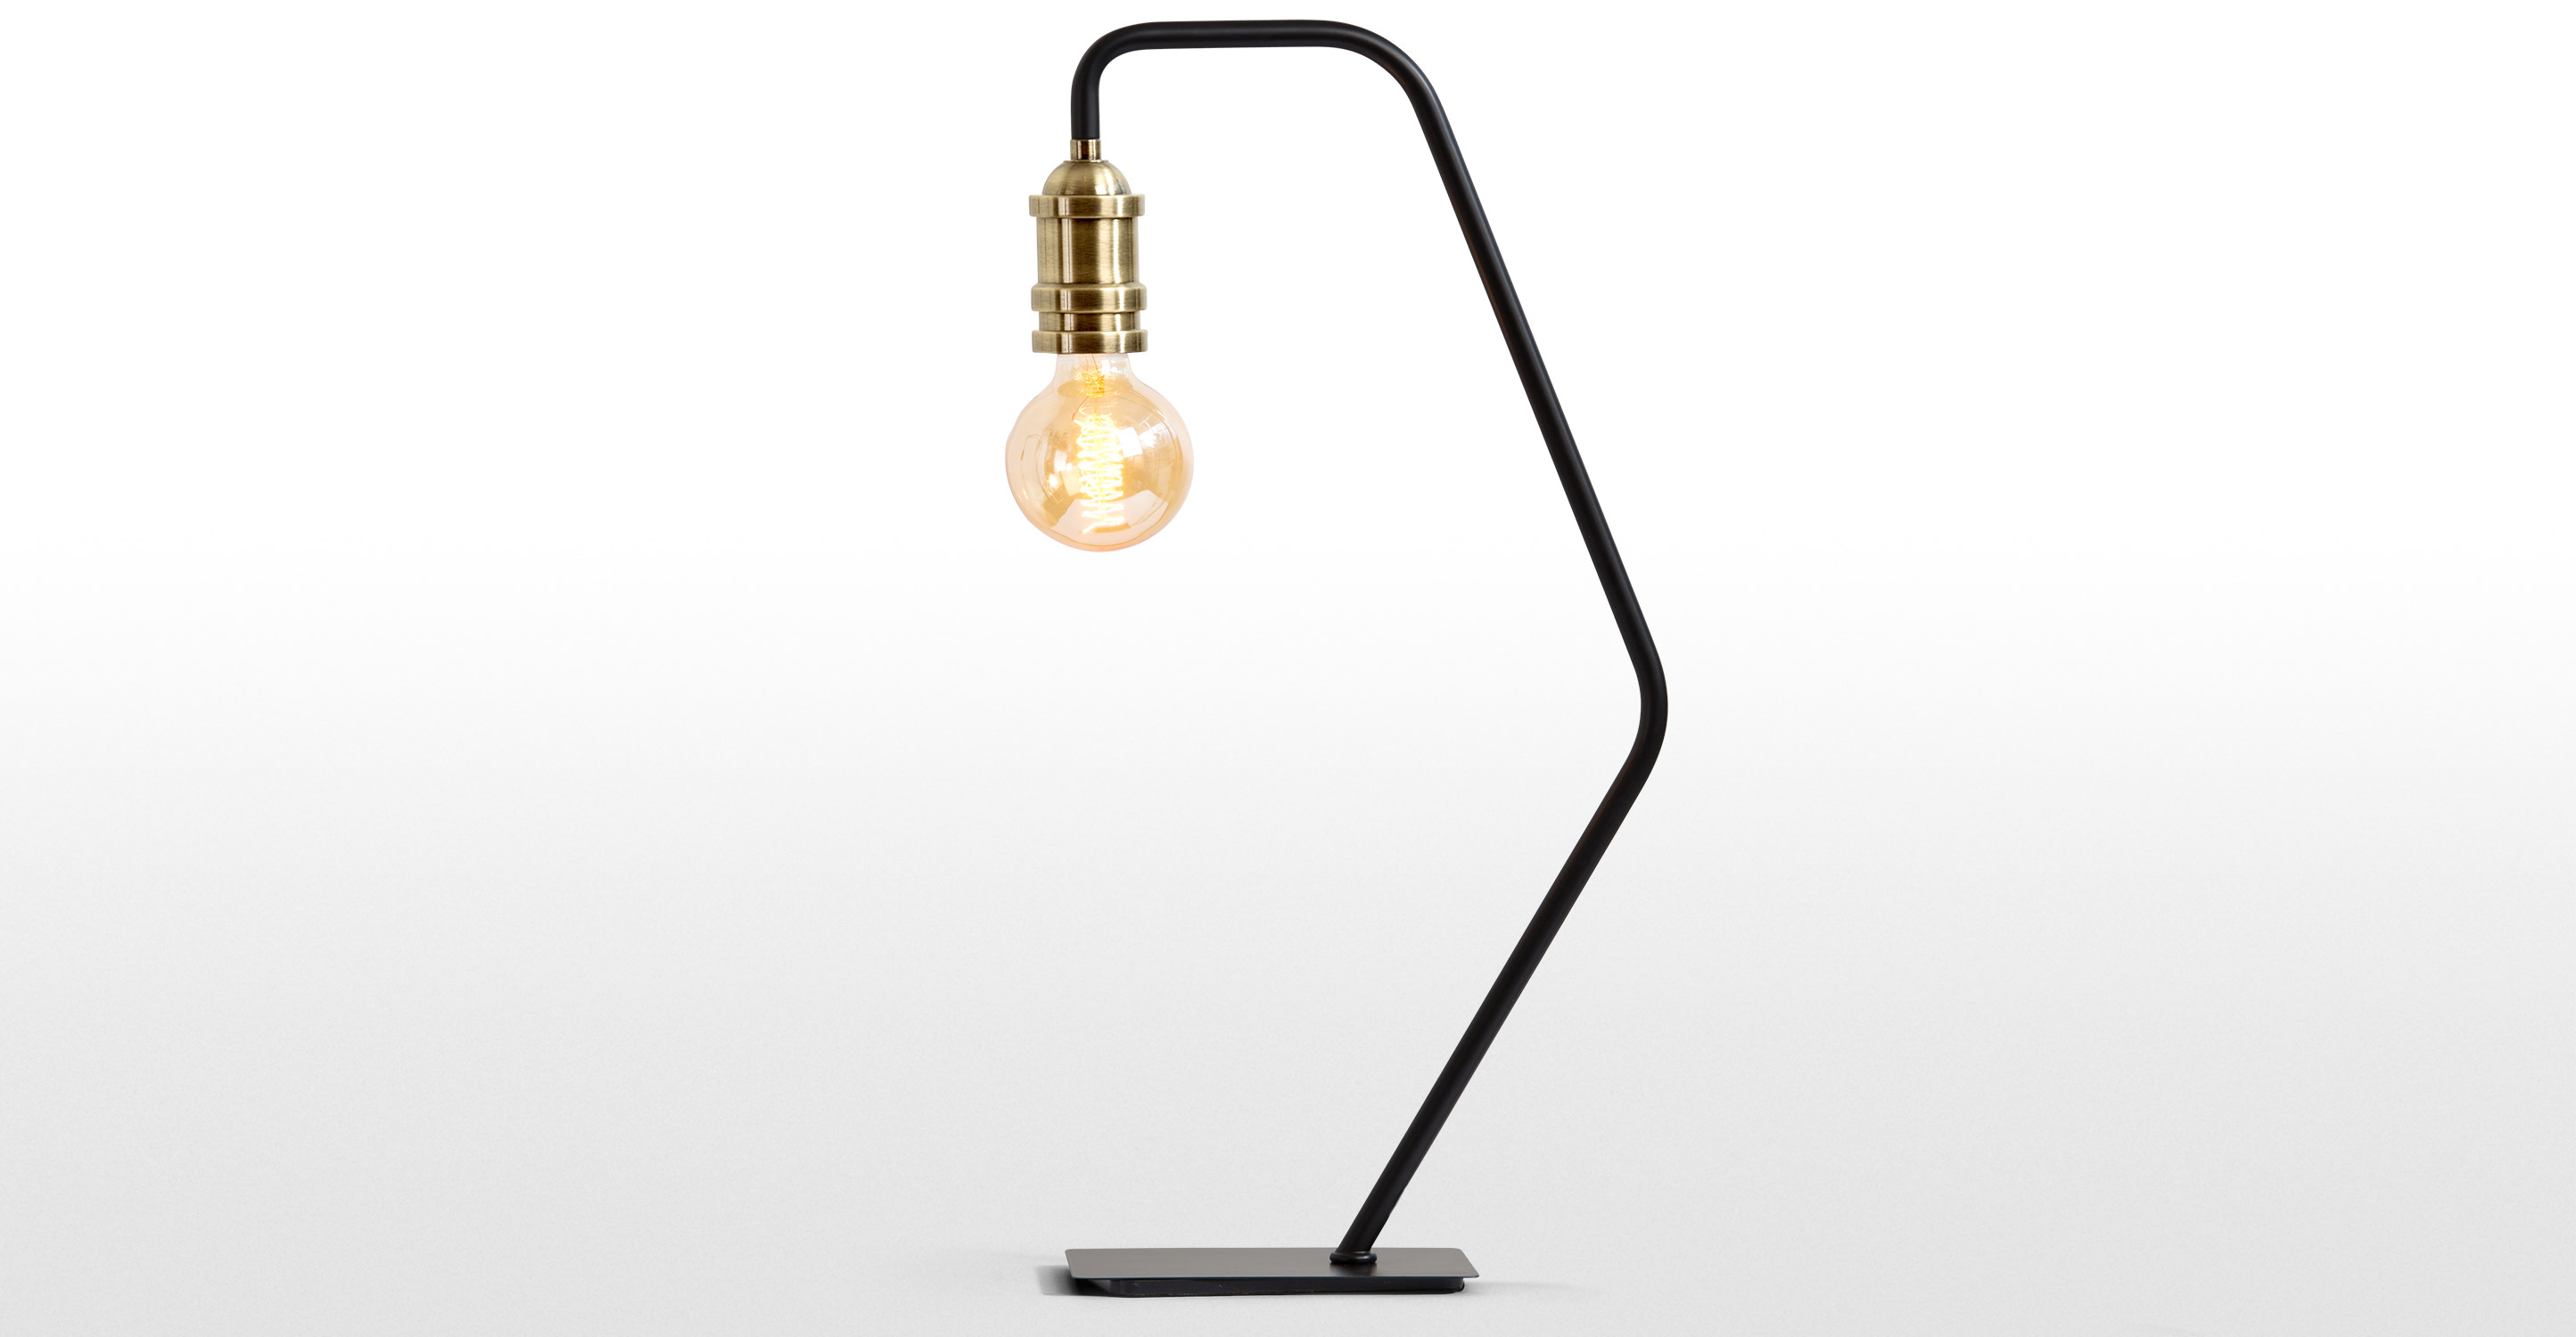 Starkey Wall Lamp Black And Brass : Starkey Table Lamp, Black & Brass made.com